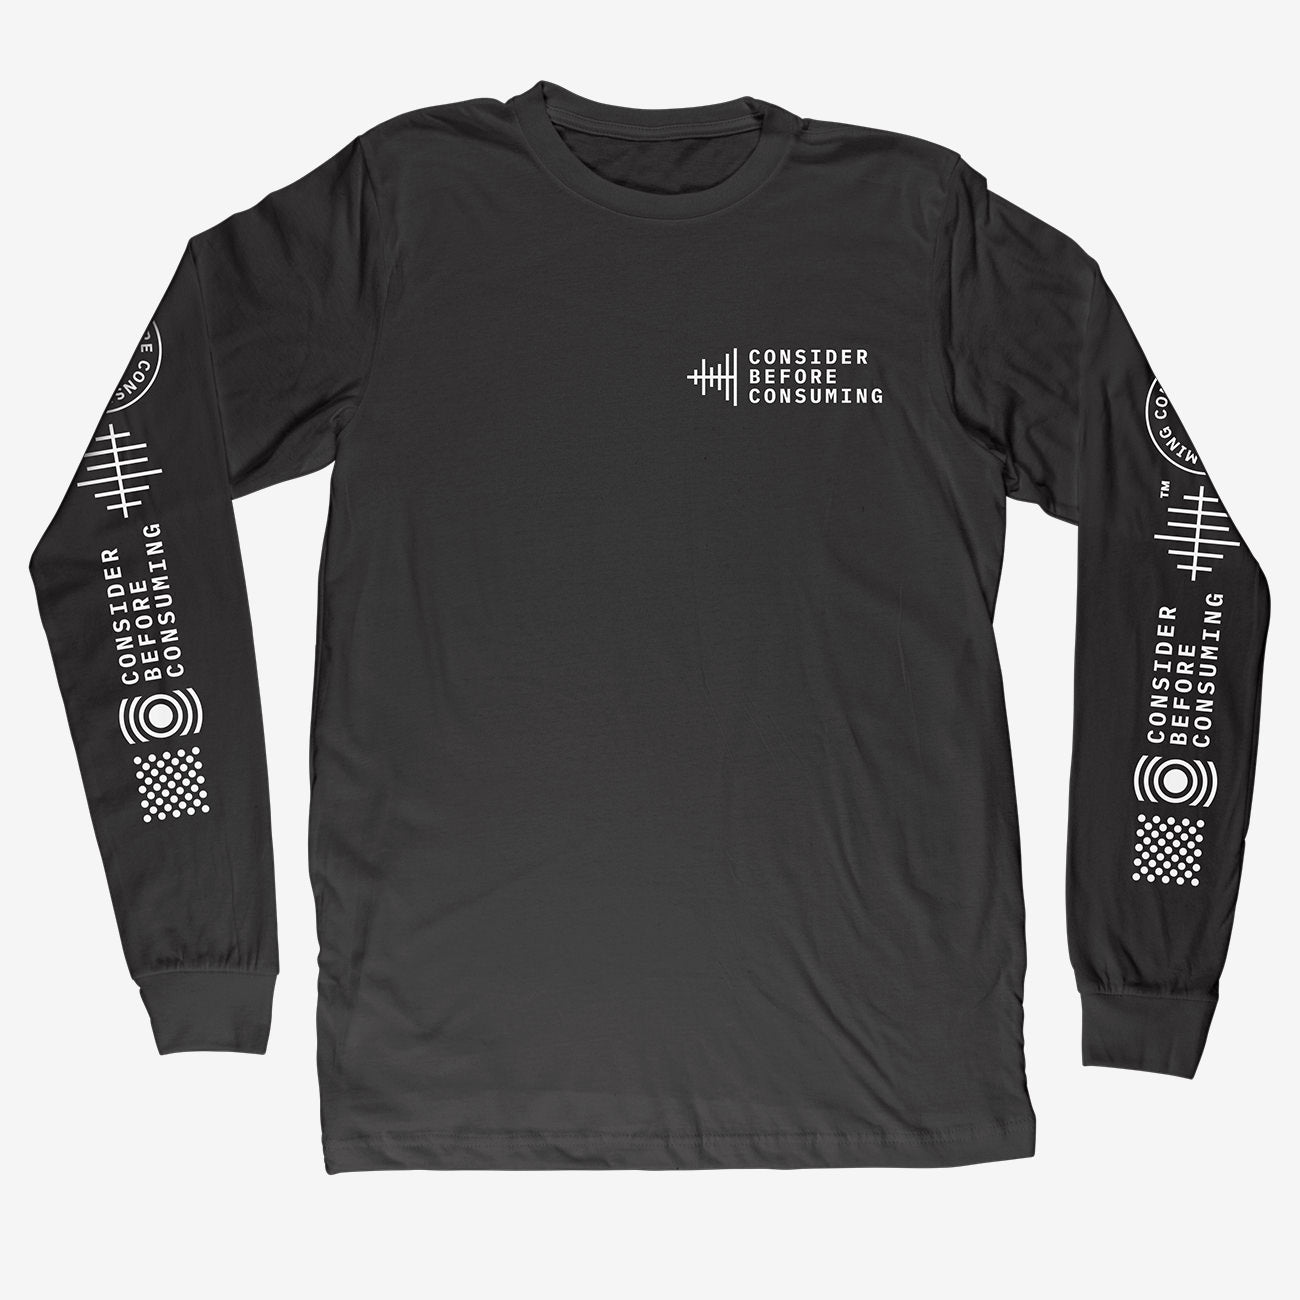 'Consider Before Consuming' - Long Sleeve